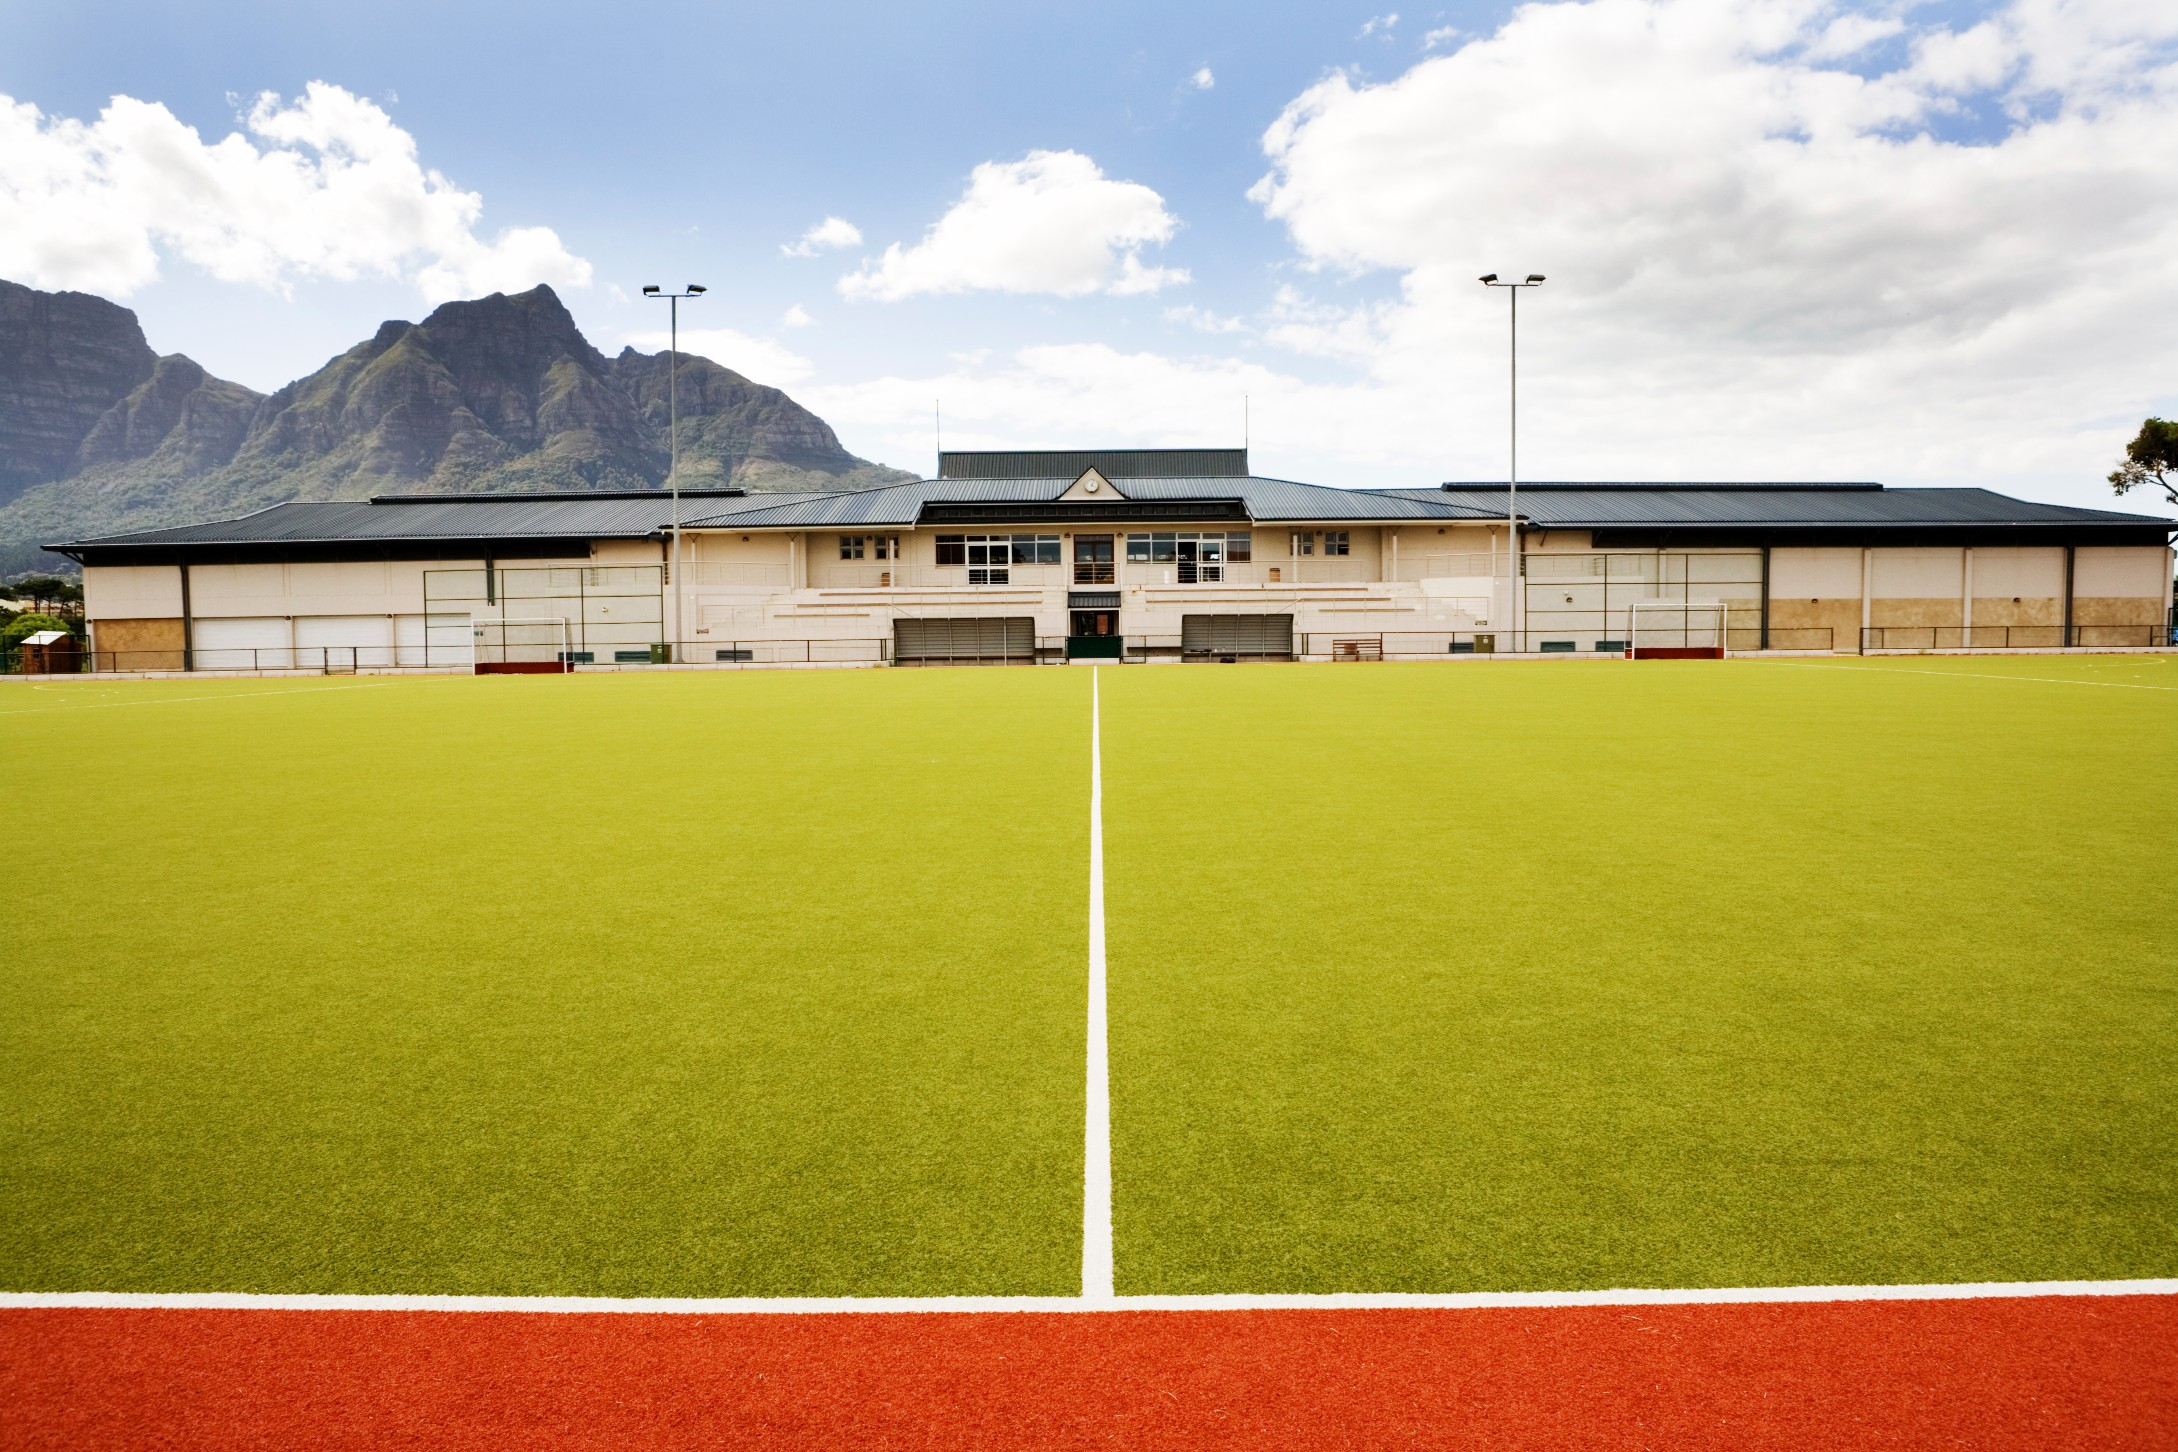 Synthetic grass artificial pitches for UK sports facilities.